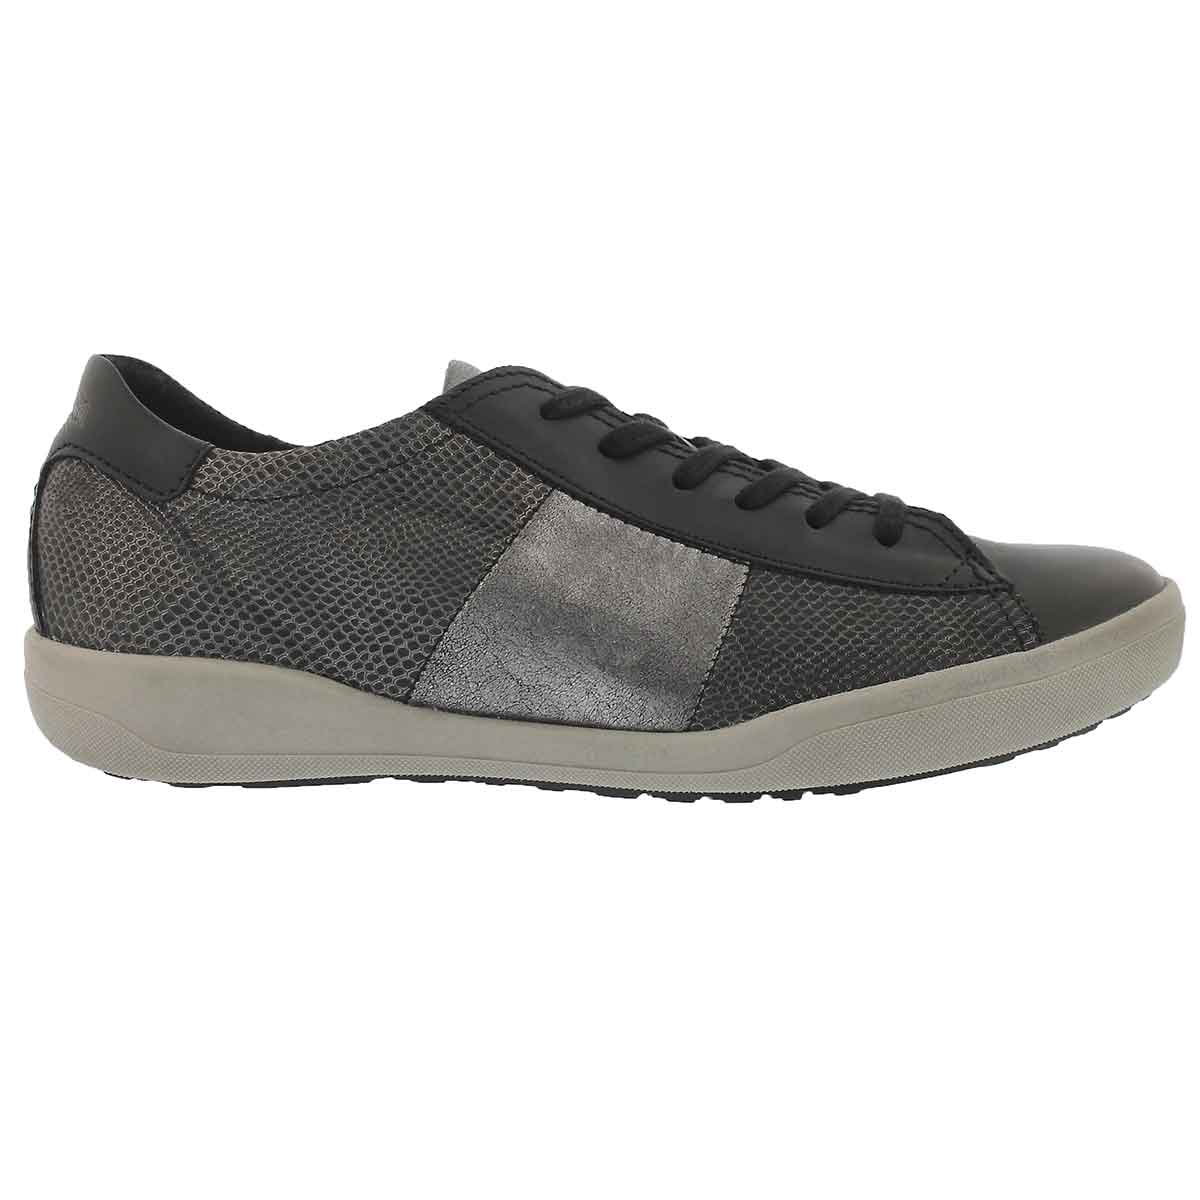 Lds Sina 27 schwarz lace up casual snkr